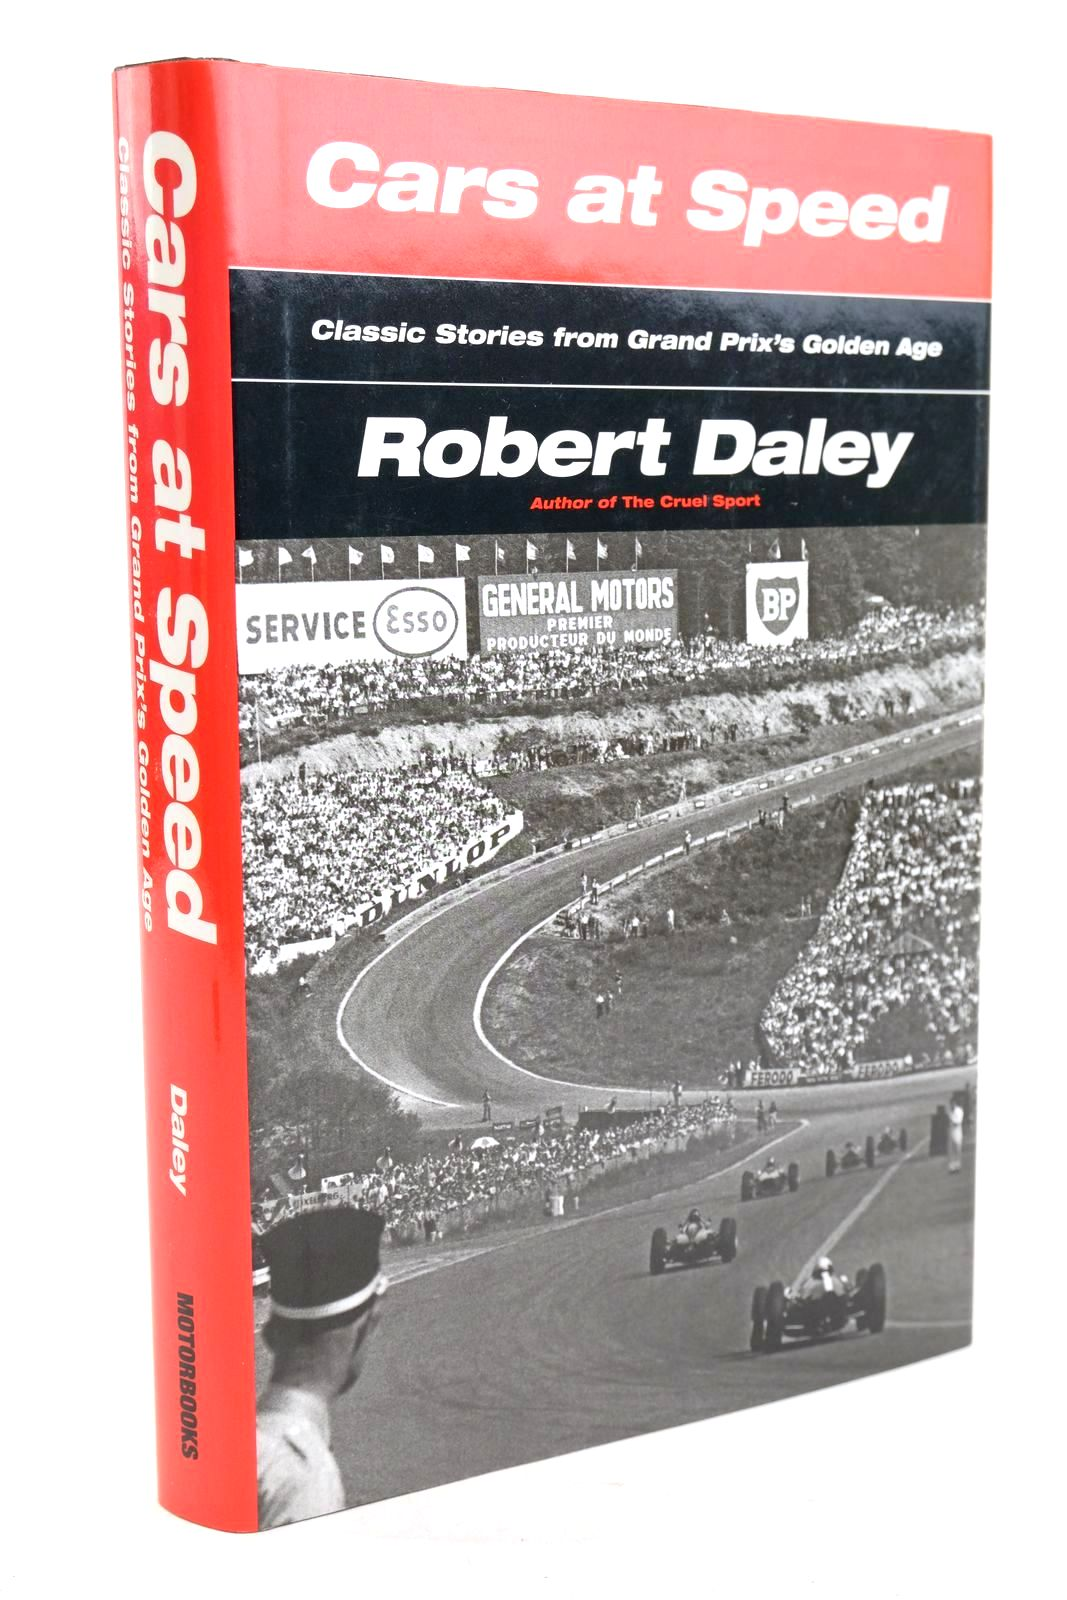 Photo of CARS AT SPEED written by Daley, Robert published by Motorbooks (STOCK CODE: 1320181)  for sale by Stella & Rose's Books